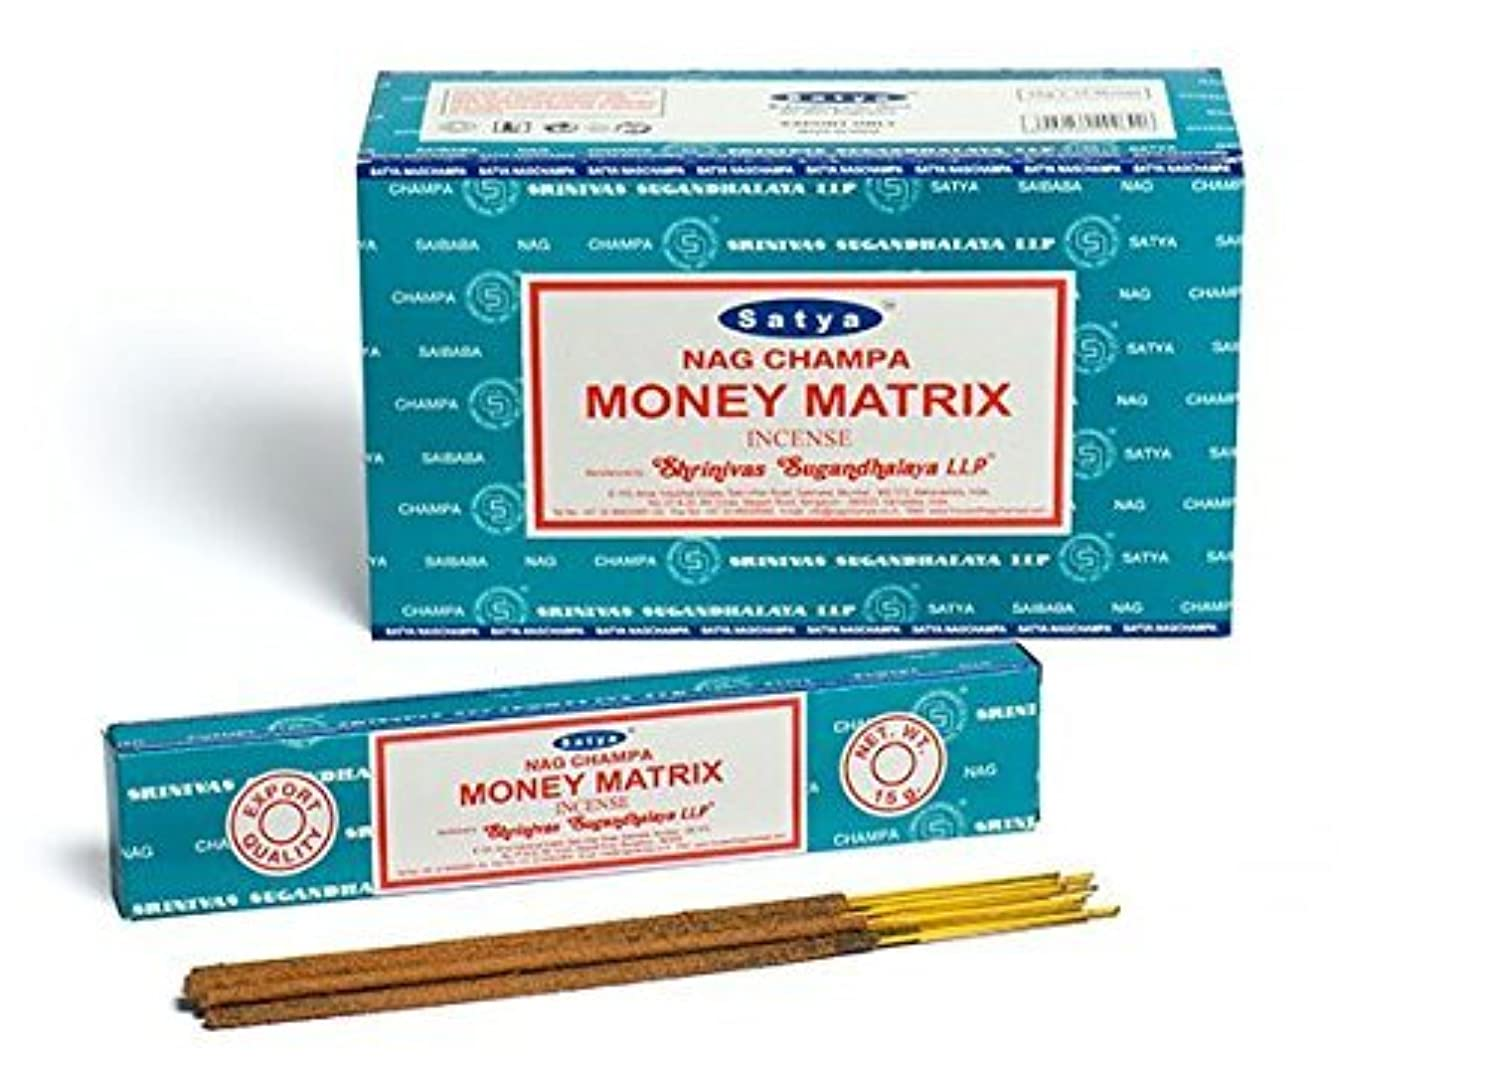 恩恵コーラスアームストロングBuycrafty Satya Champa Money Matrix Incense Stick,180 Grams Box (15g x 12 Boxes)